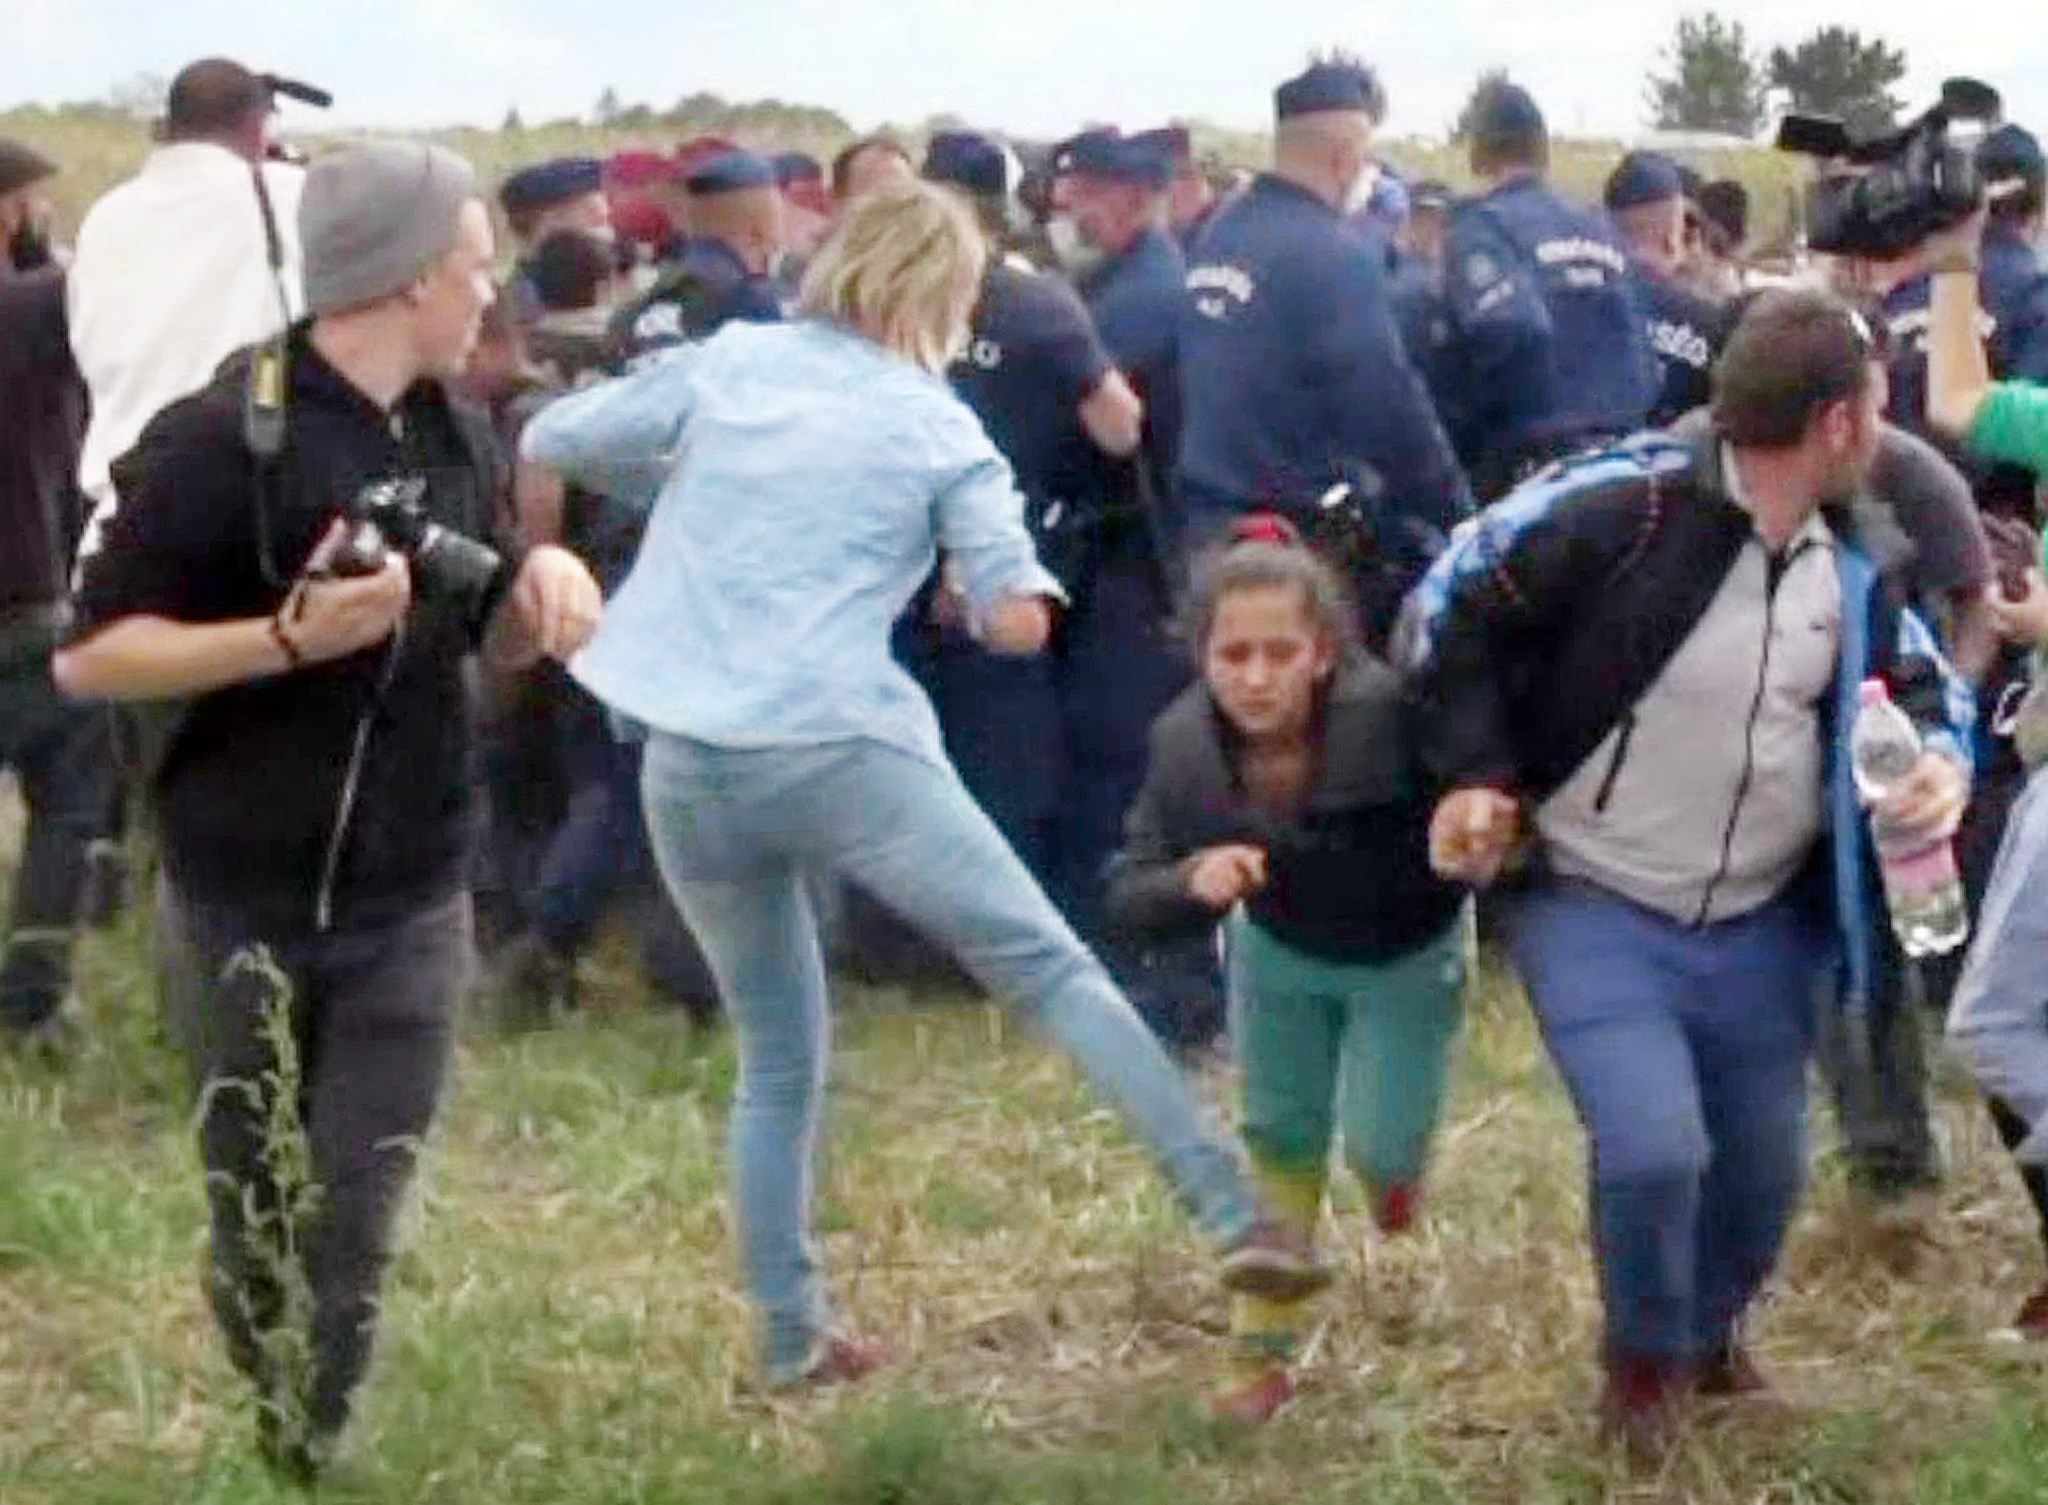 This video grab made on Sept. 9, 2015 shows Petra Laszlo kicking a child as she run with other migrants from a police line during disturbances in Roszke, southern Hungary.